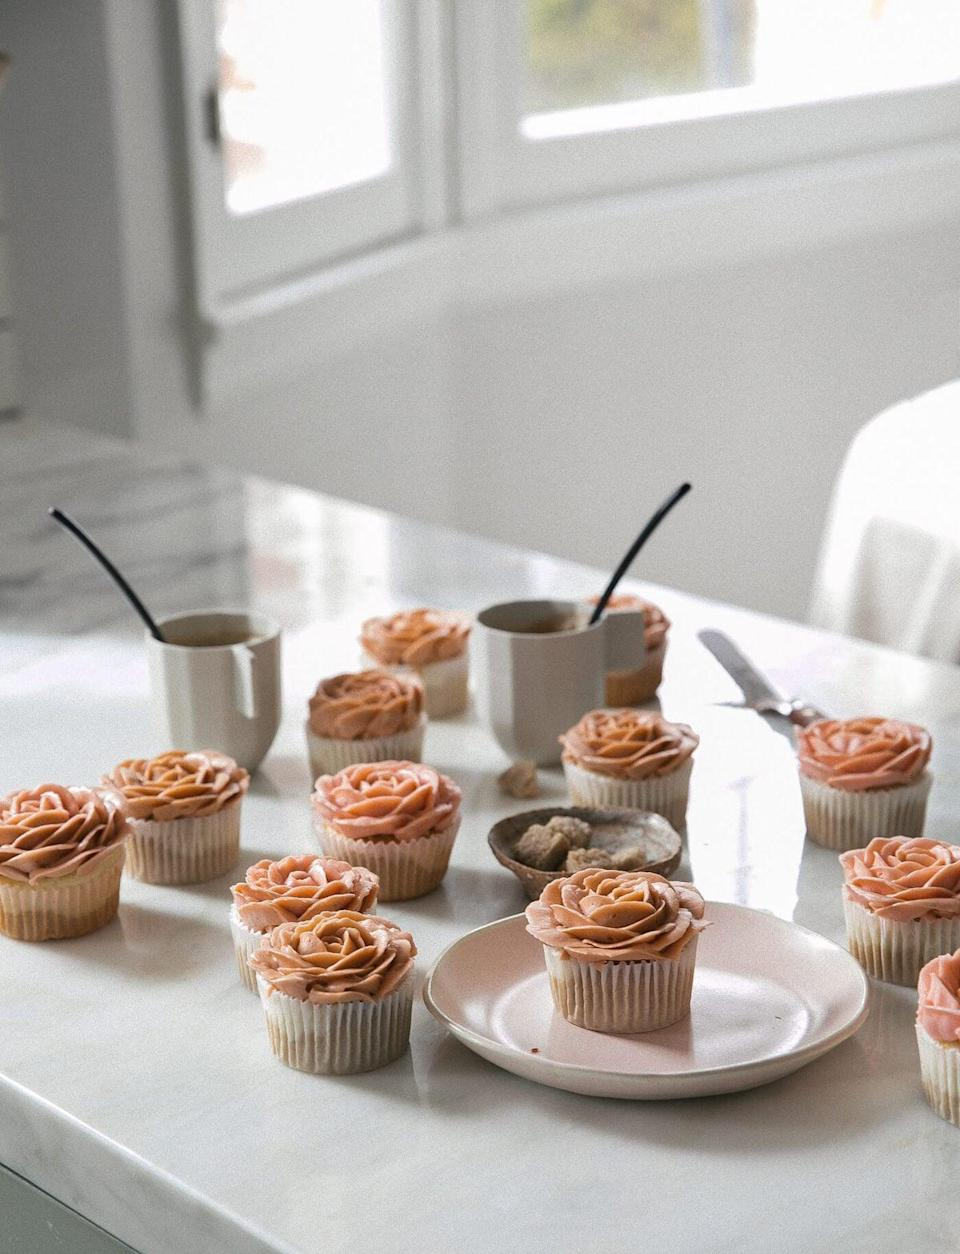 "<p>Tell us, have you ever seen anything as sweet as these? The buttercream frosting is enough to make anyone drool, but add a rich cappuccino base, and all bets are off. Enjoy these with a cup of black coffee to really give 'em a kick.</p> <p><strong>Get the recipe</strong>: <a href=""https://www.acozykitchen.com/cappuccino-flavored-rose-cupcakes"" class=""link rapid-noclick-resp"" rel=""nofollow noopener"" target=""_blank"" data-ylk=""slk:cappuccino-flavored rose cupcakes"">cappuccino-flavored rose cupcakes</a></p>"